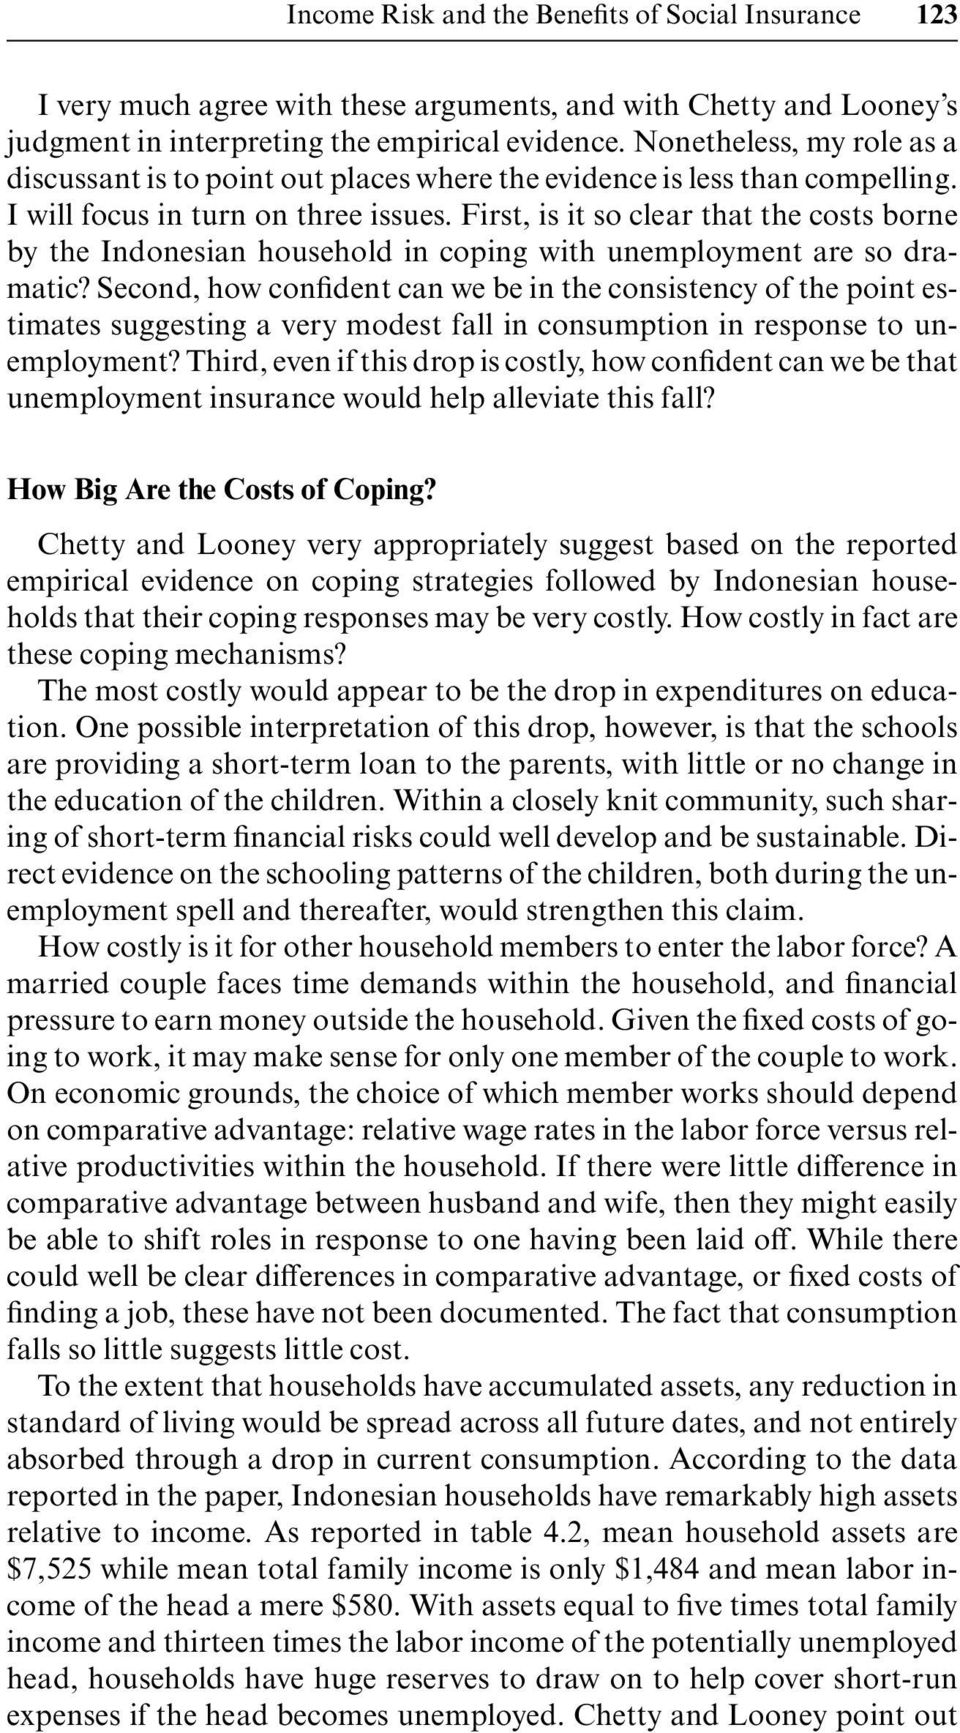 First, is it so clear that the costs borne by the Indonesian household in coping with unemployment are so dramatic?